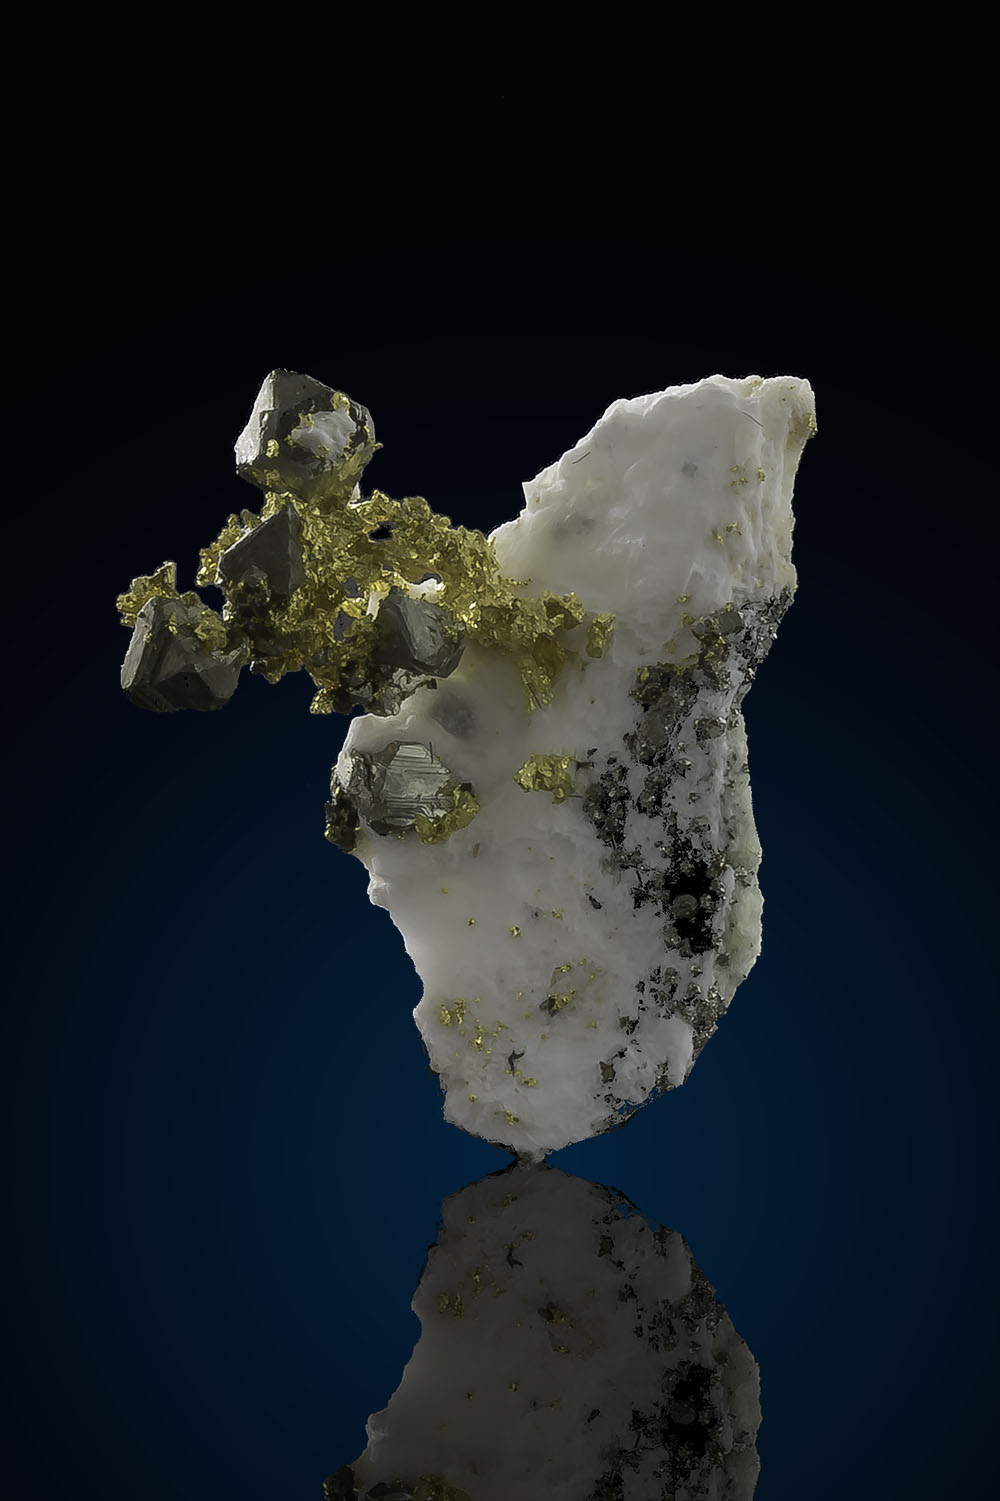 An oddity - Gold, quartz, and pyrite crystals